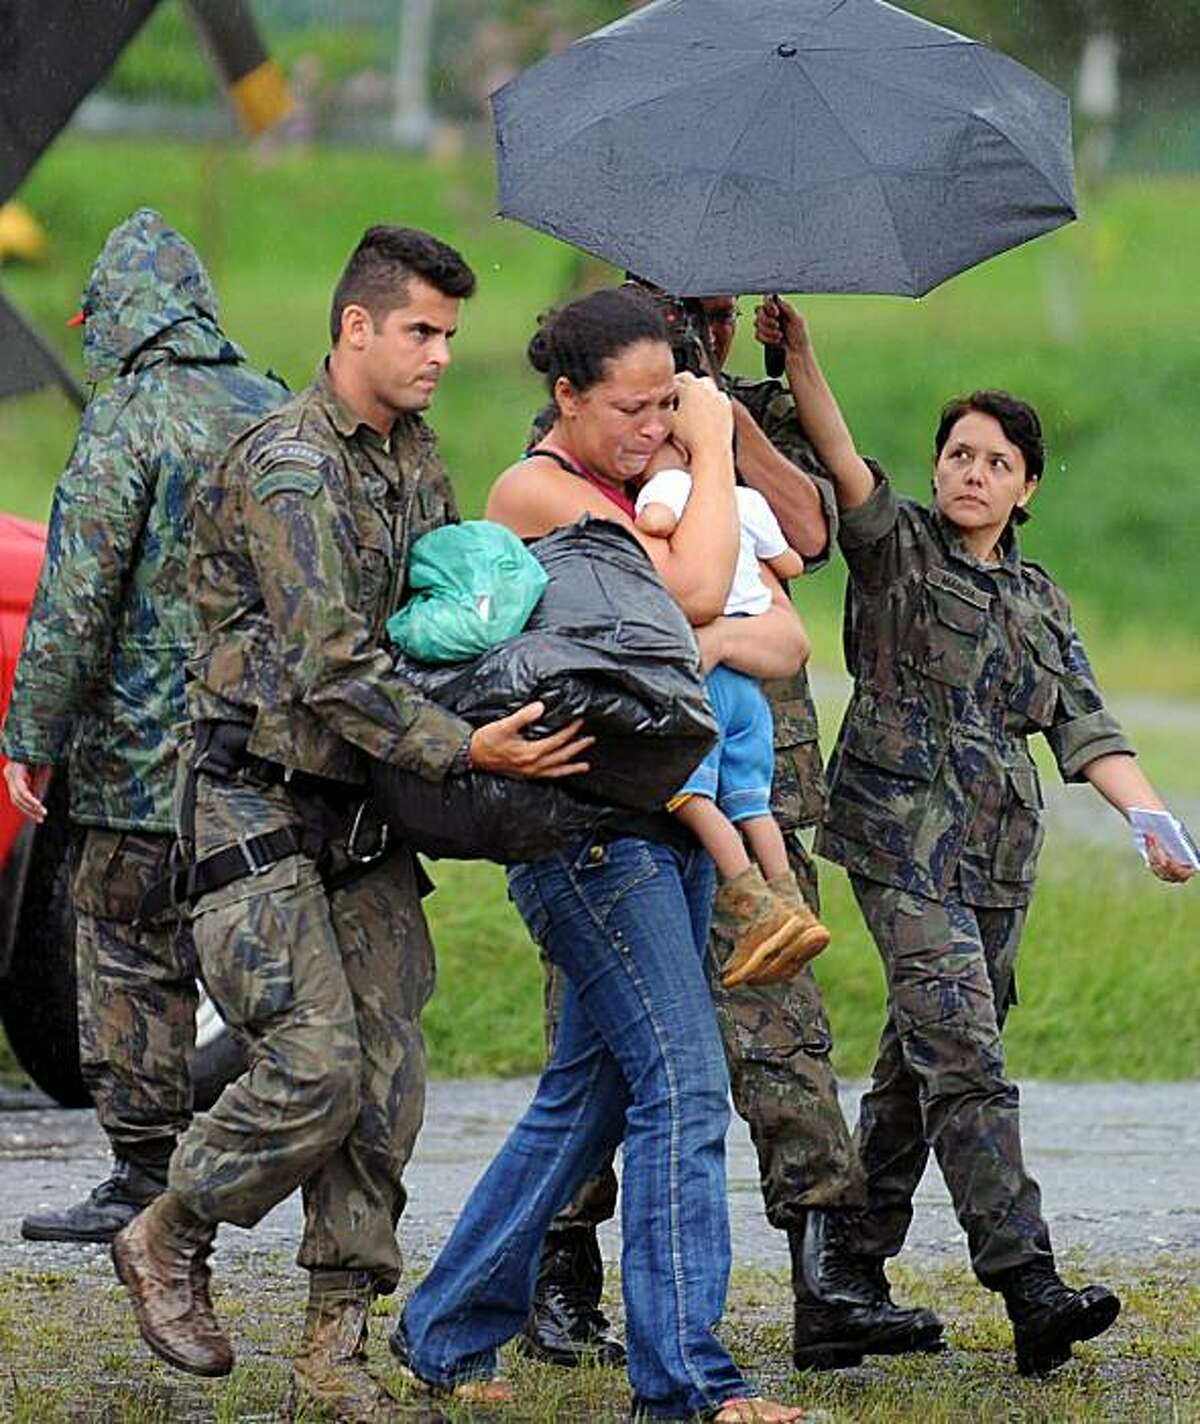 Brazilian Air Force members help a woman who was rescued with her children at a temporary air base in Itaipava, Petropolis, some 100 km from downtown Rio de Janeiro, Brazil, on January 17, 2011. The death toll from devastating floods and landslides in Brazil rose Monday to 640, as the military stepped up efforts to reach isolated communities near Rio.